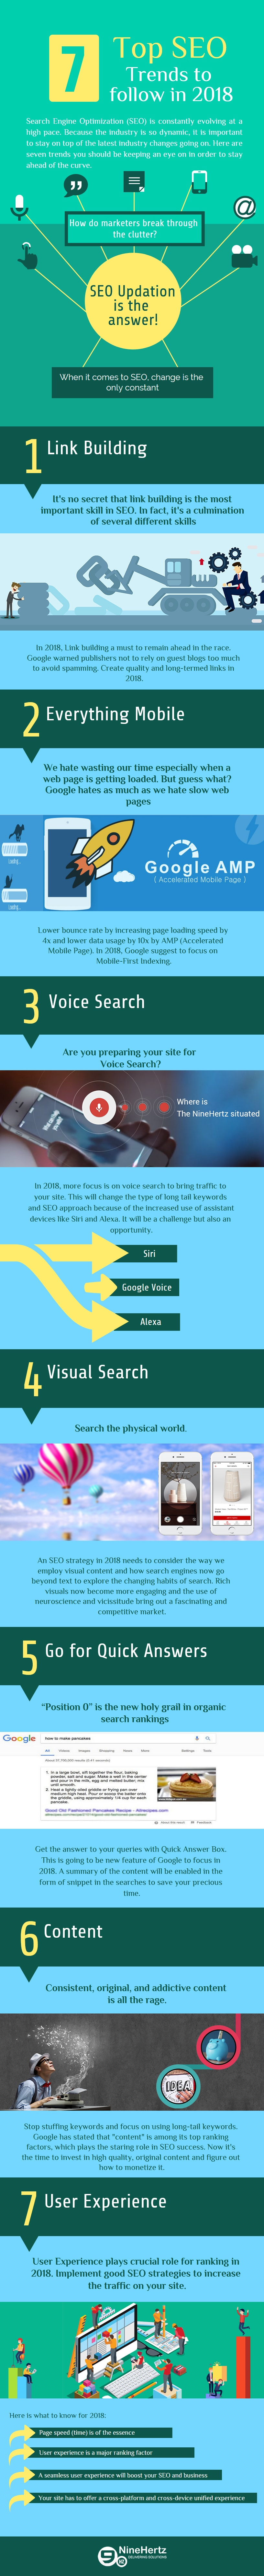 SEO_Trends-2018-infographic-plaza